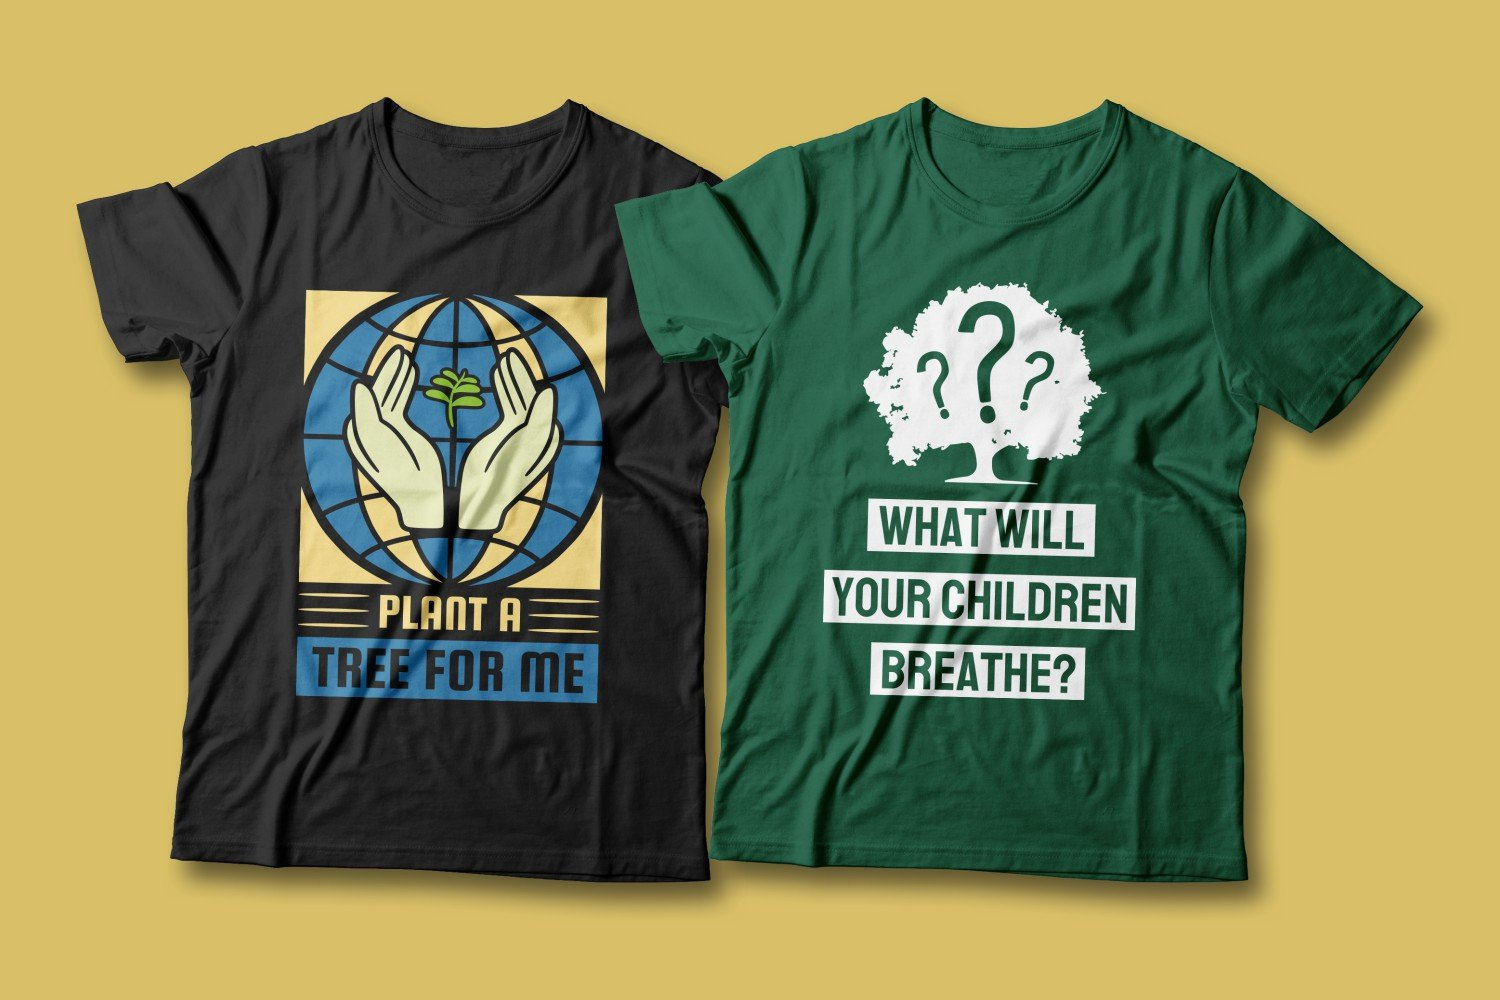 Two T-shirts - green and black. Both with images of a tree.